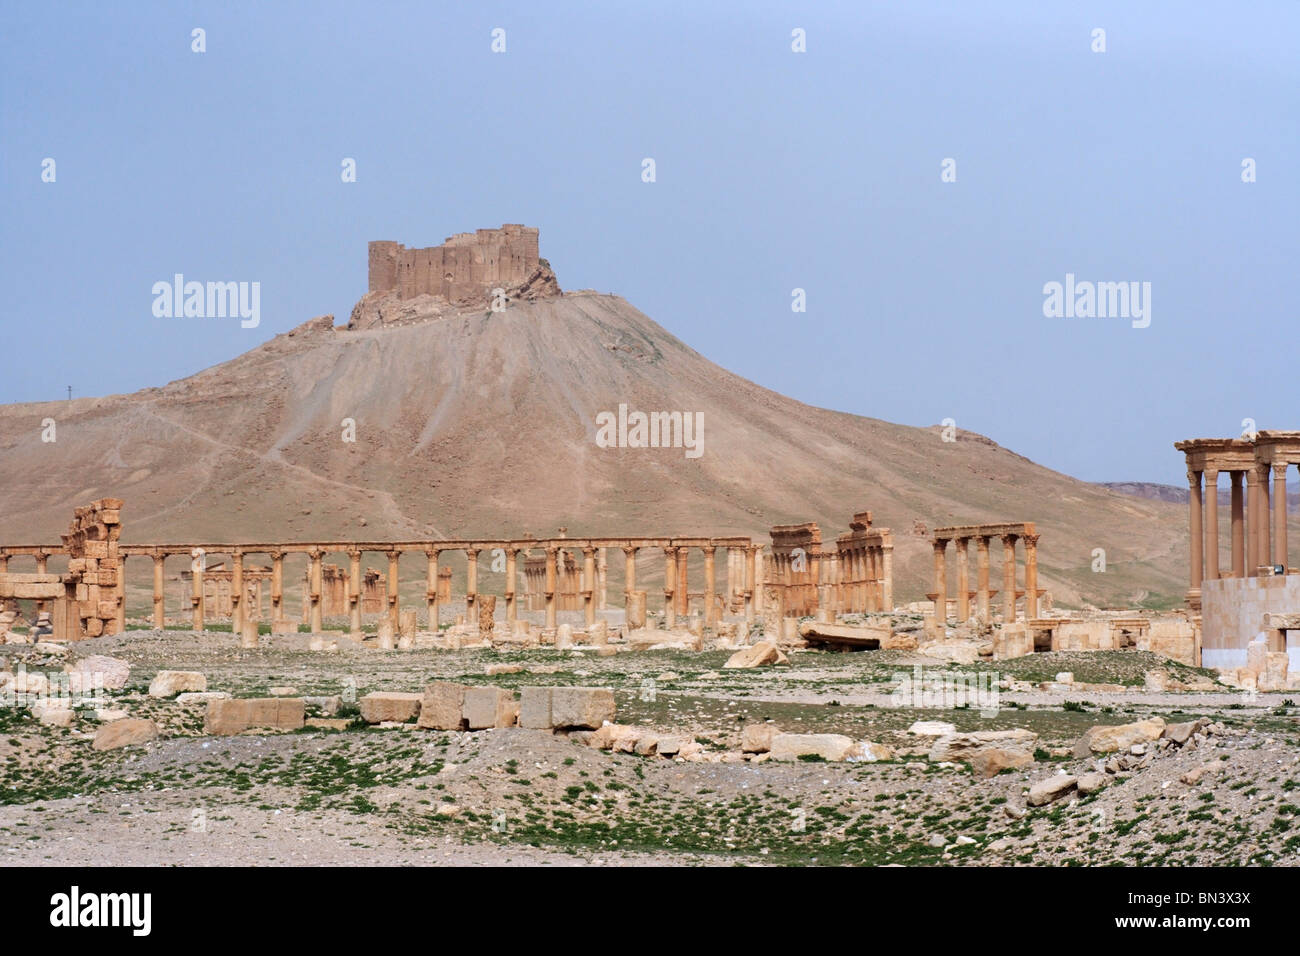 Remains of ancient city of Palmyra in Syria. On the hill top is the Fakhreddin Almaani castle. - Stock Image